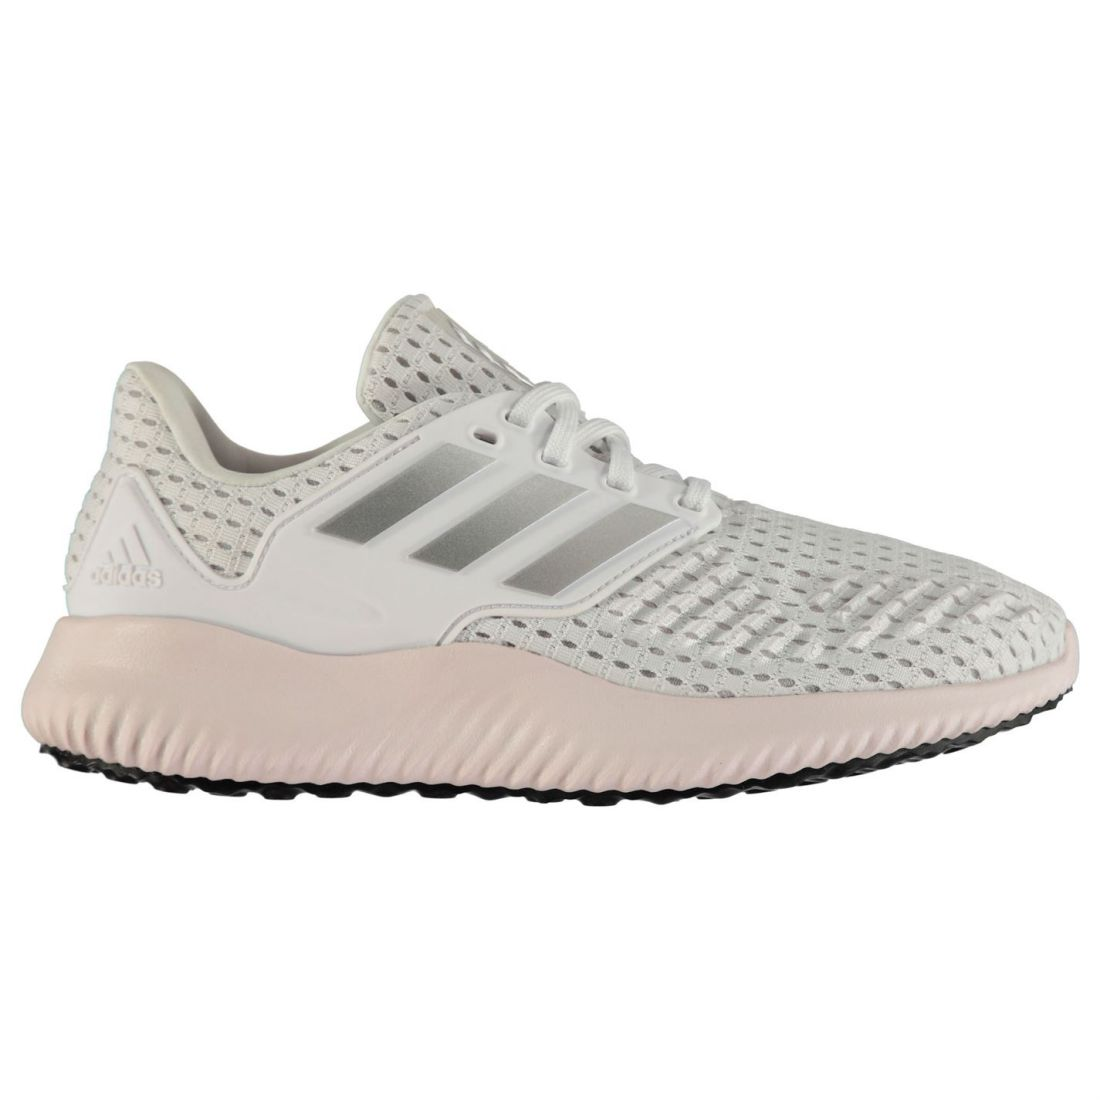 509c69aae3101 adidas Alpha Bounce RC Ladies Road Running Shoes Laces Fastened Lightweight  Mesh